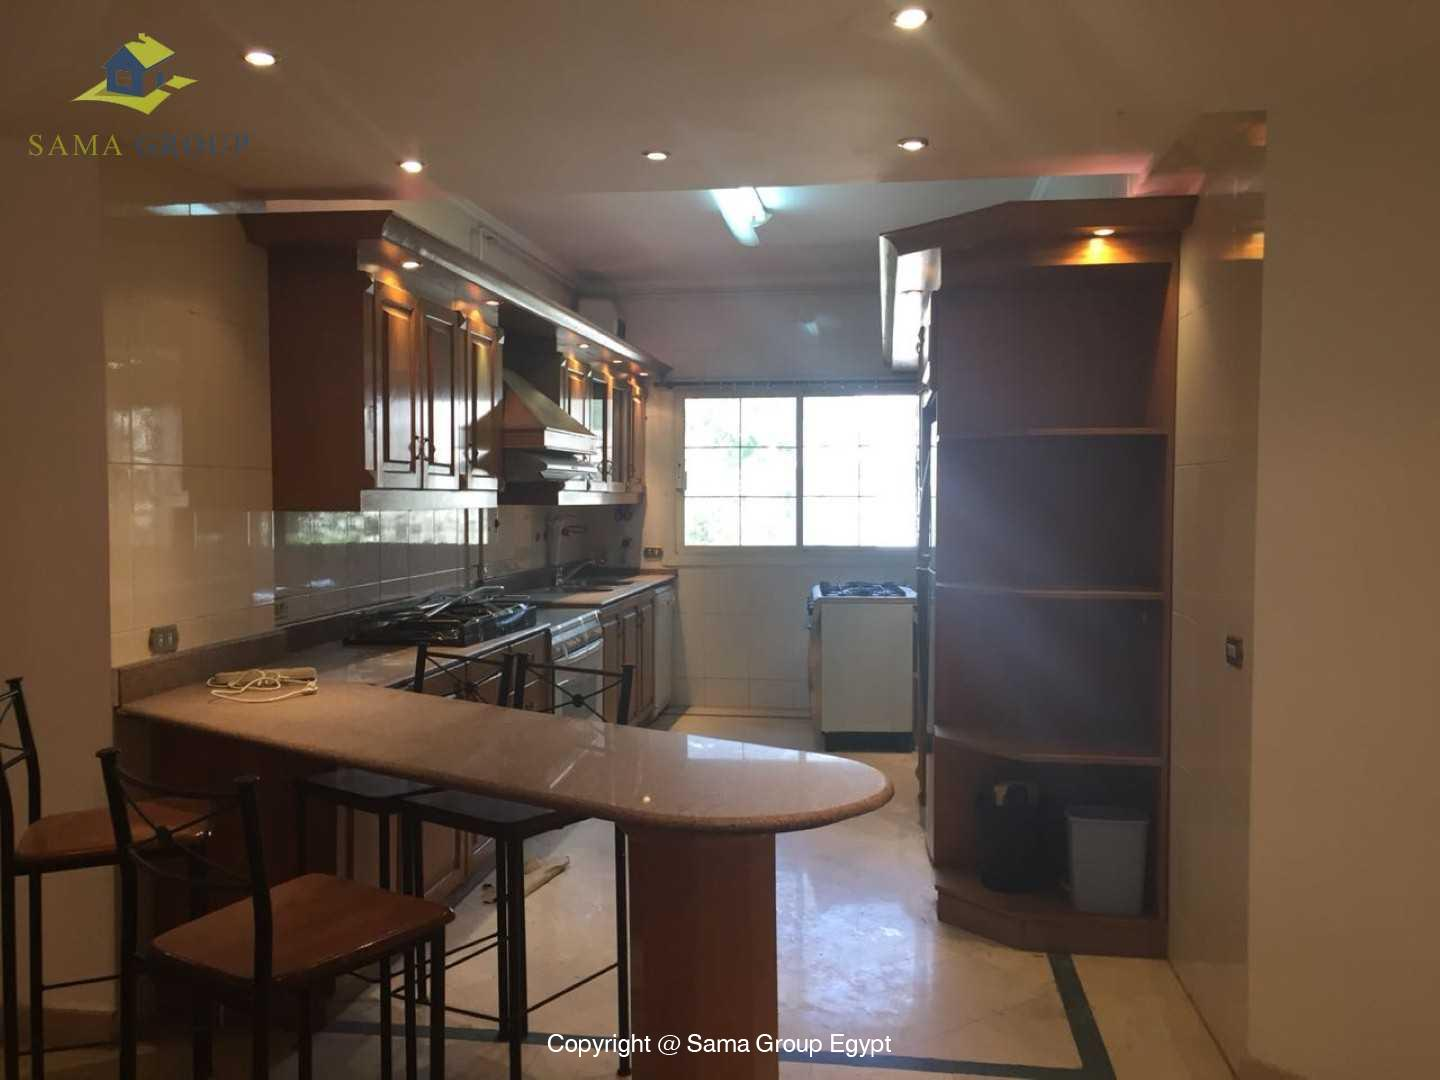 Furnished Apartment For Rent In Maadi Sarayat,Furnished,Apartment NO #4